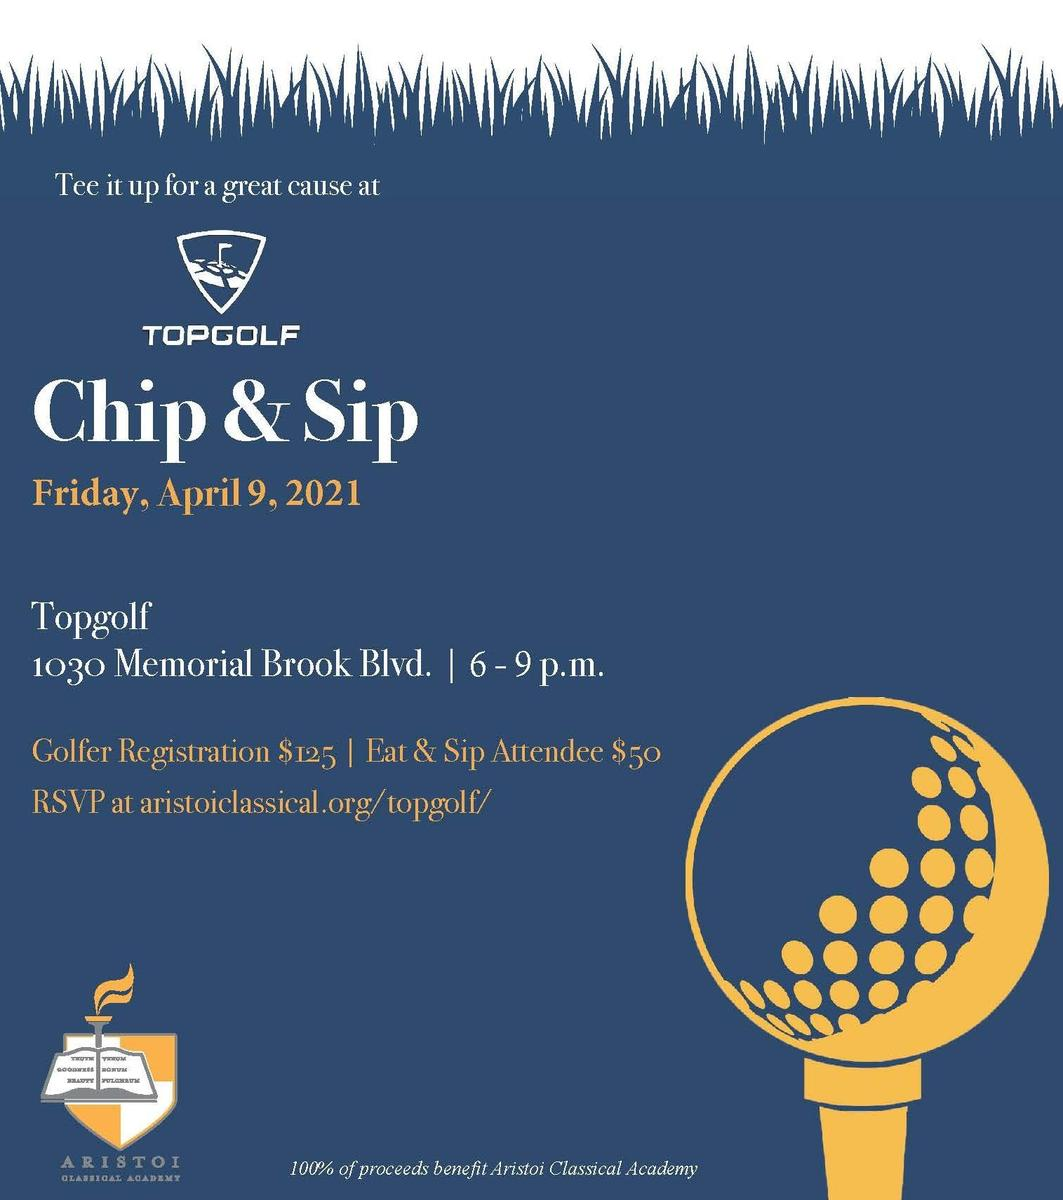 Topgolf Chip and Sip